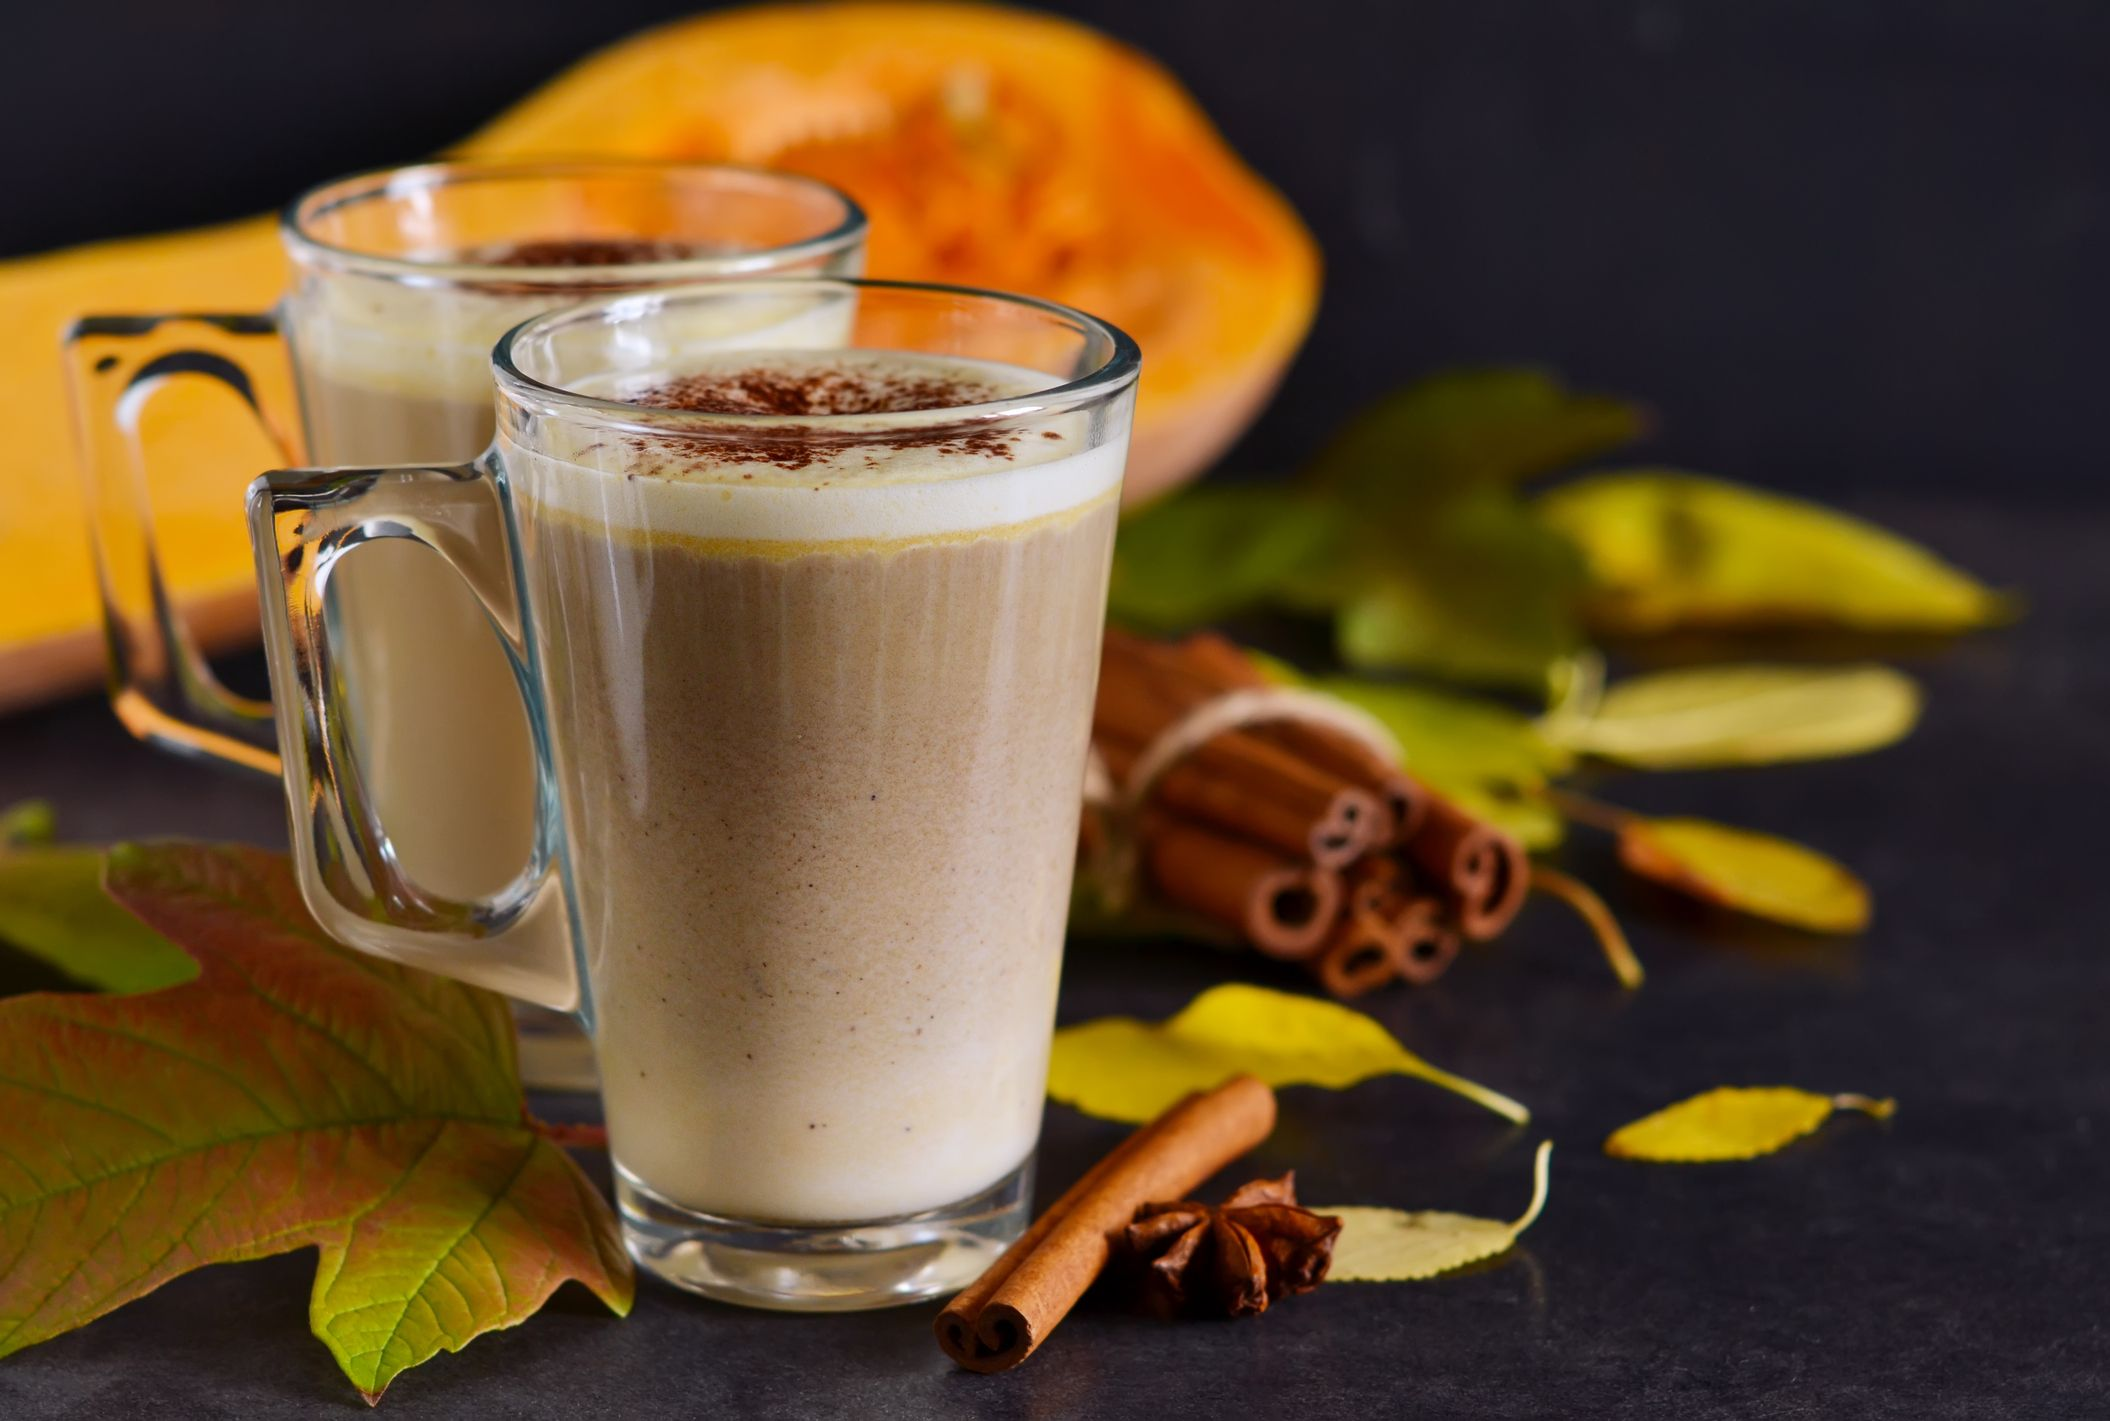 Try this recipe for a completely vegan pumpkin spice latte!